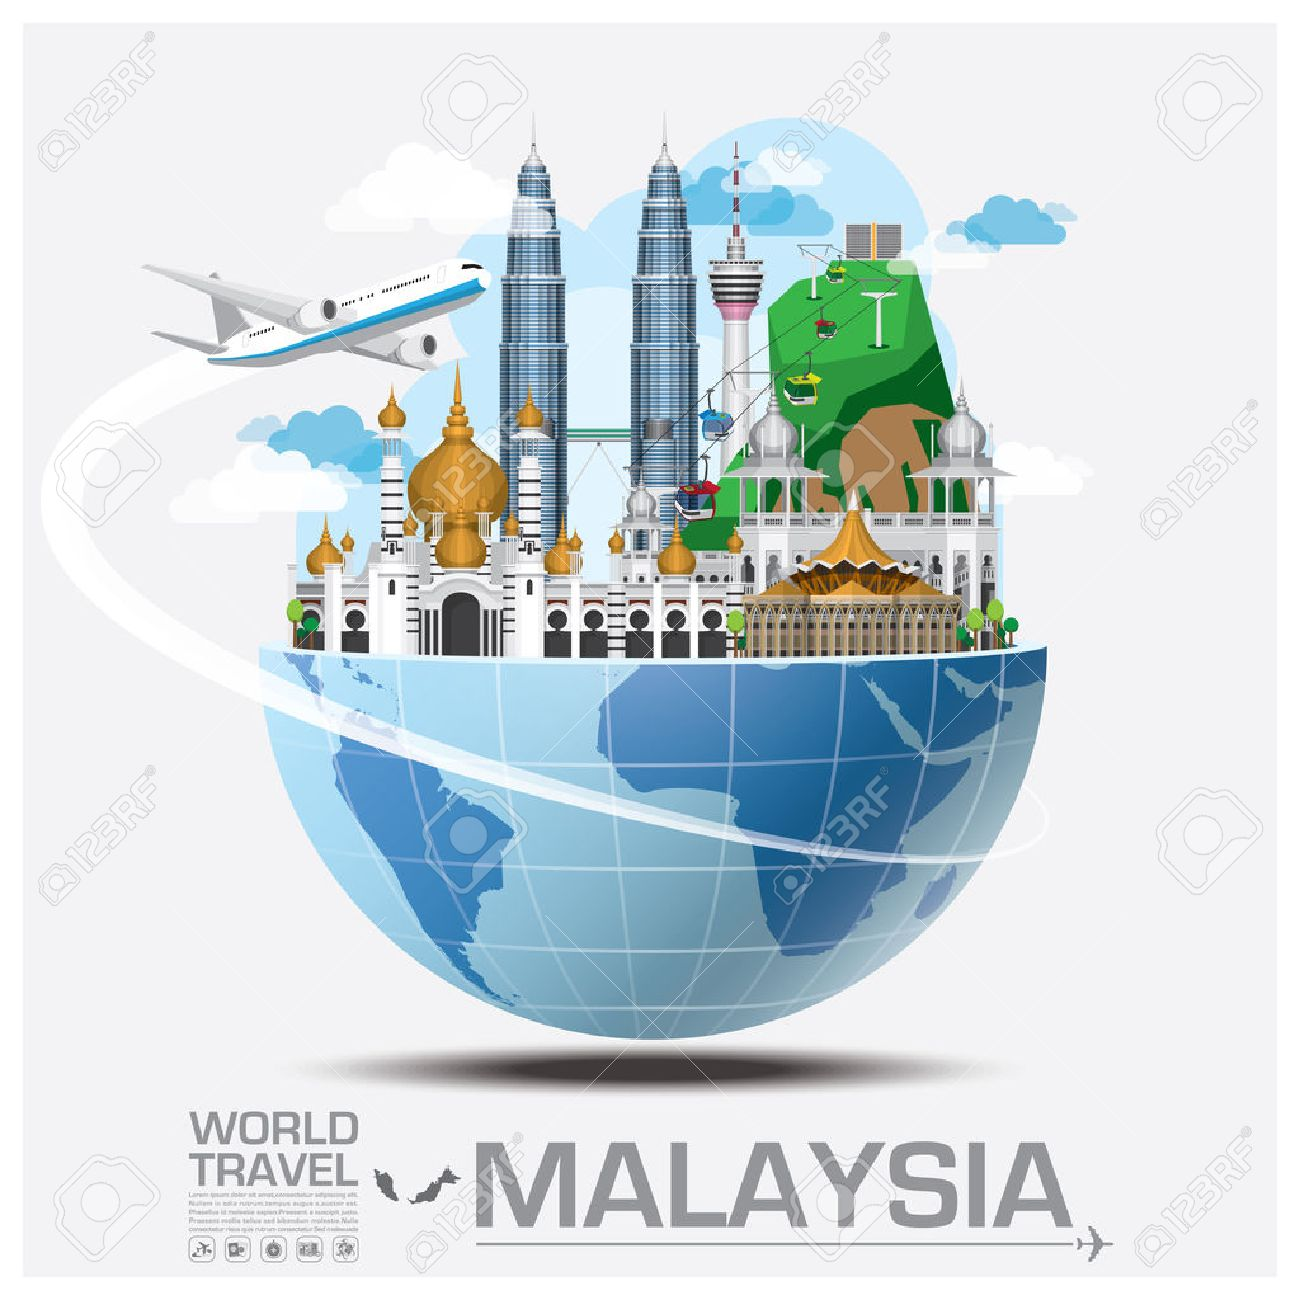 Malaysia Landmark Global Travel And Journey Infographic Vector Design Template Stock Vector - 47165098